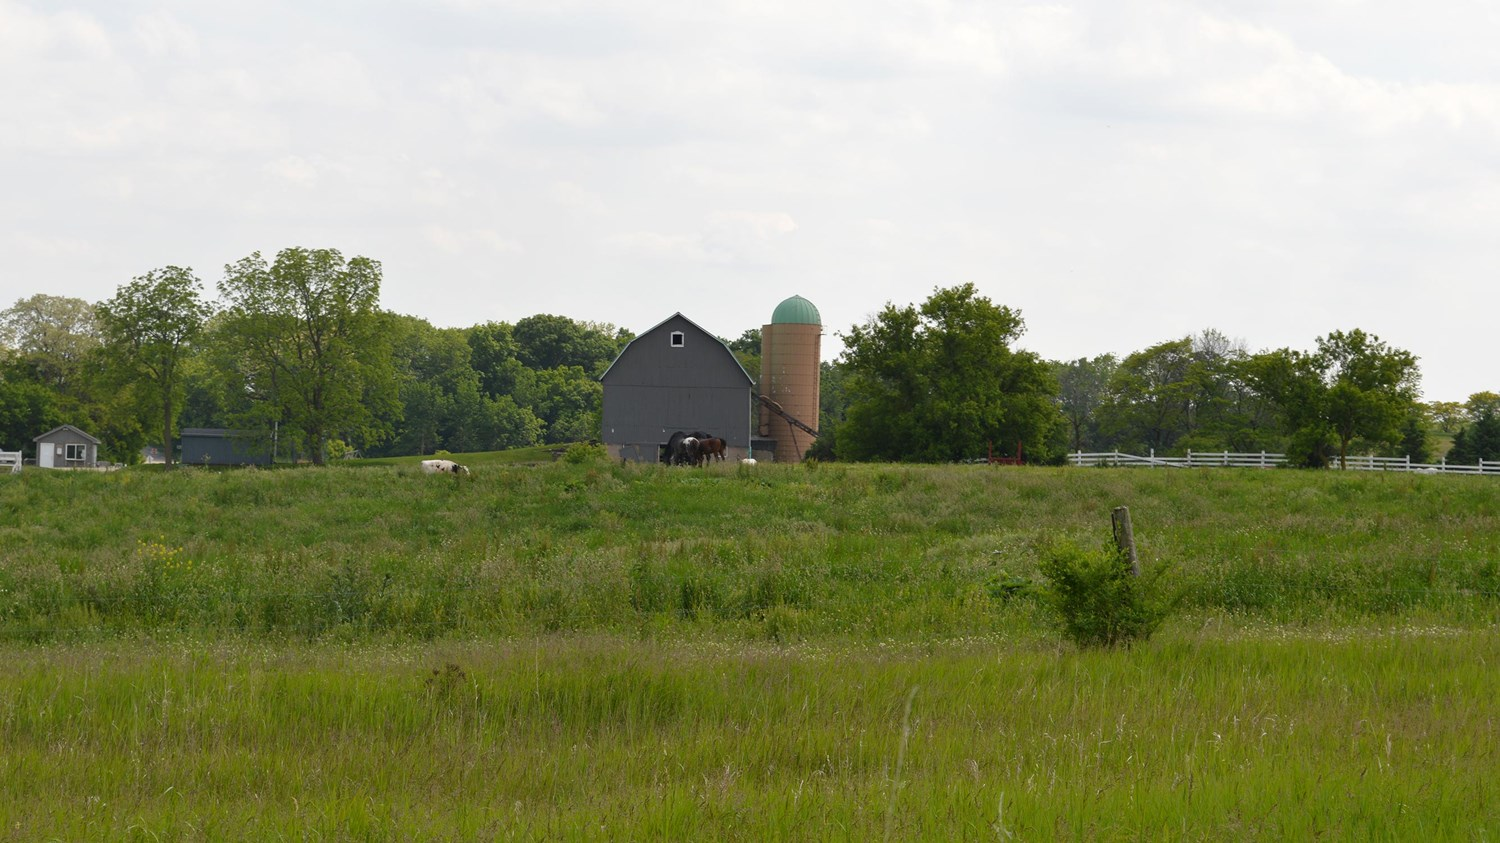 Field with a barn and horses in the distance